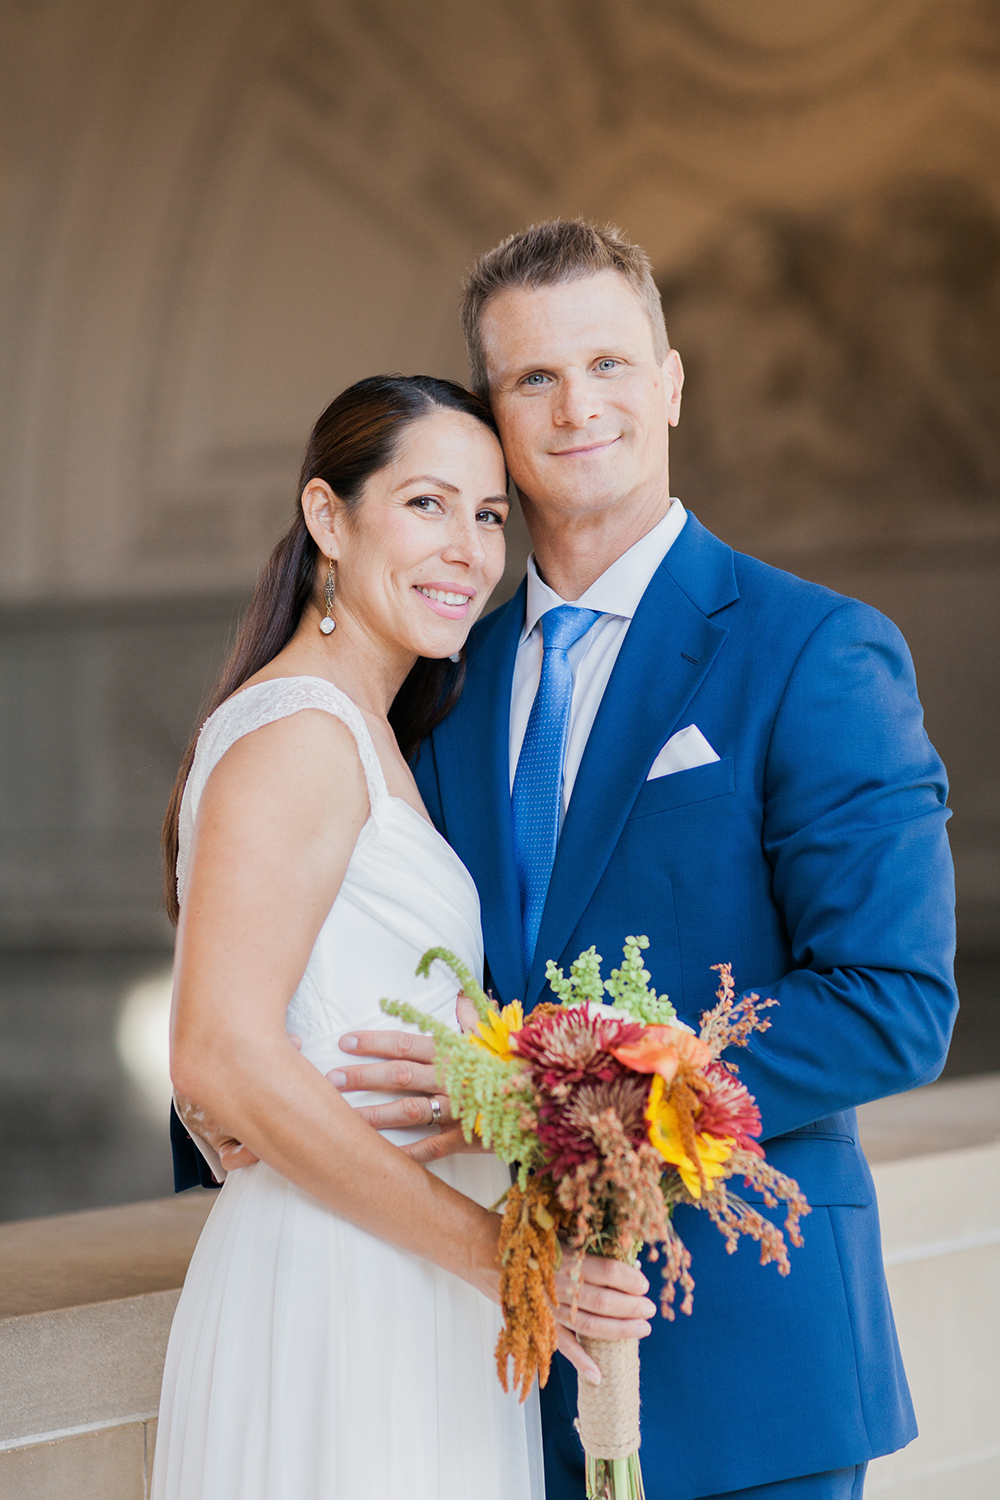 Simple bride and groom portraits after eloping in San Francisco City Hall.